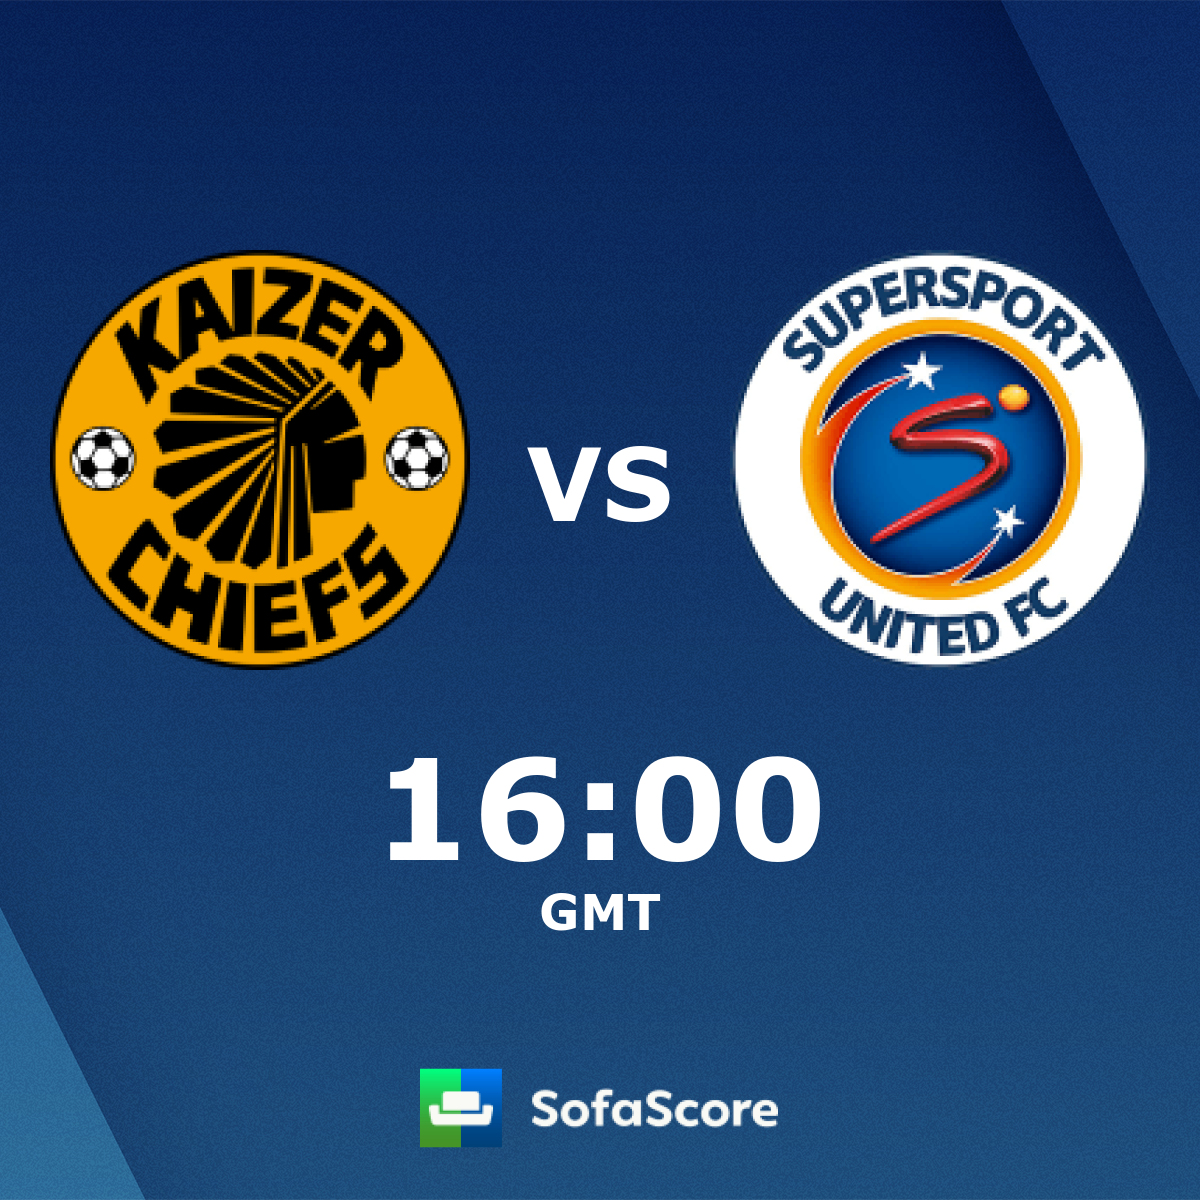 Kaizer Chiefs Supersport United live score, video stream and